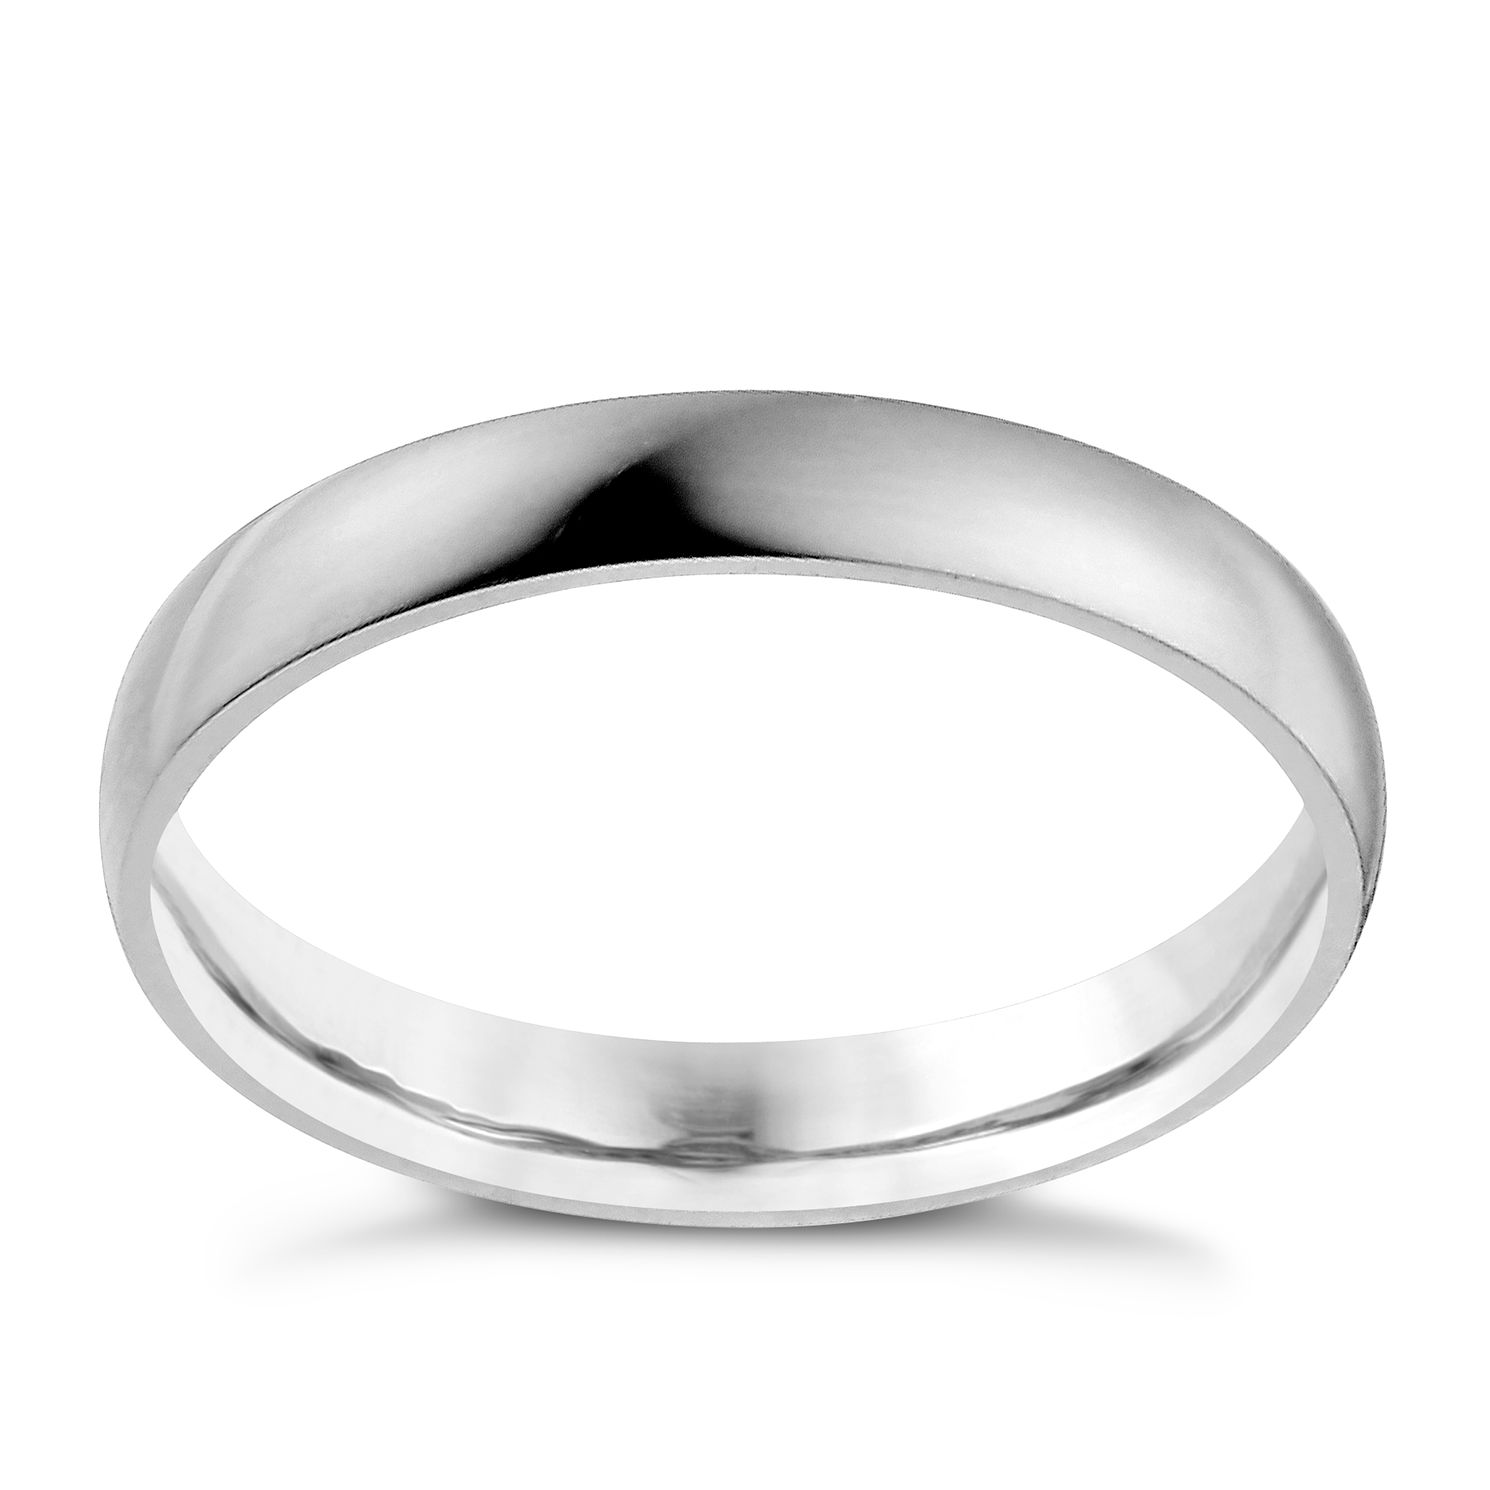 Palladium 950 3mm Extra Heavy D Shape Ring - Product number 9957375